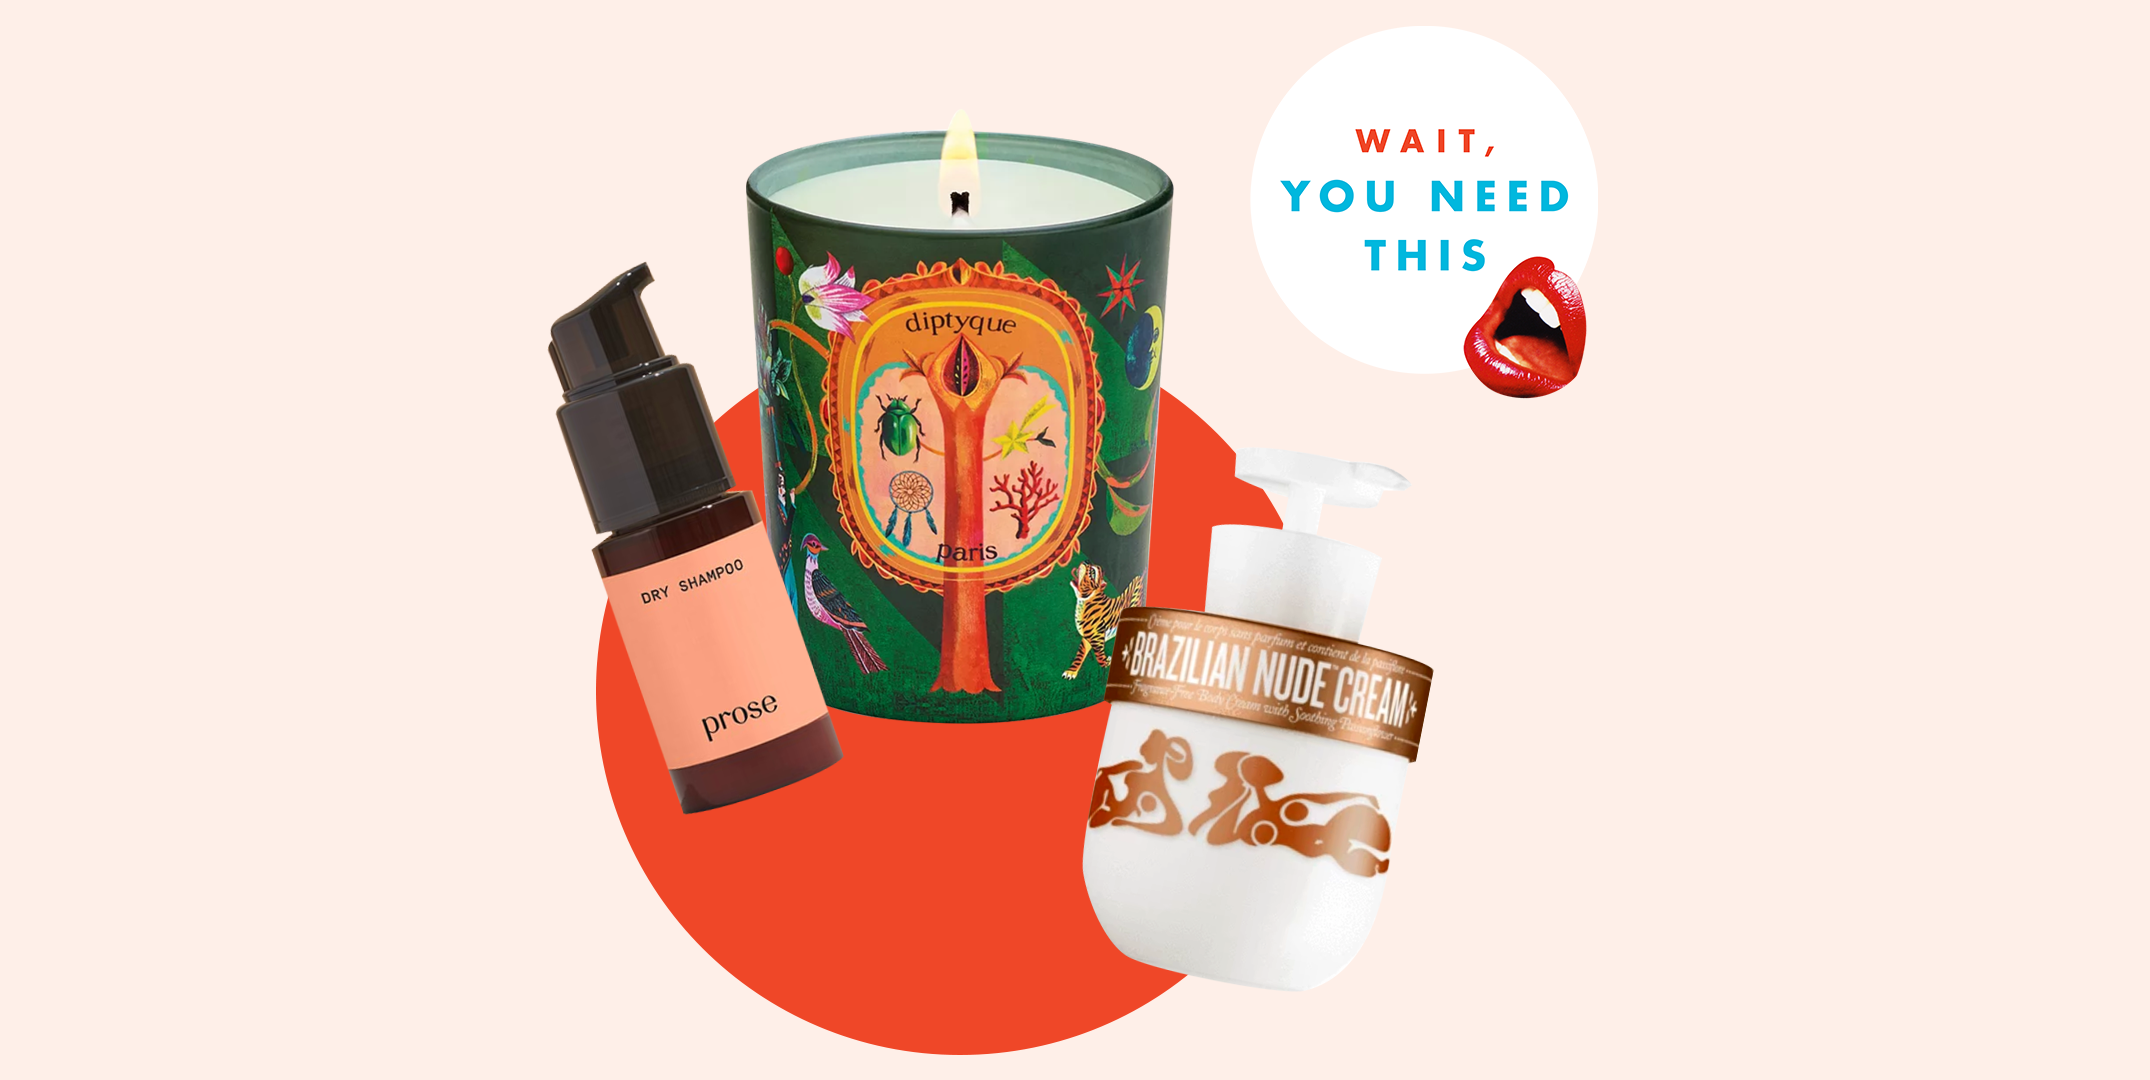 Wait, You Need This: 5 New Launches the Cosmo Beauty Team Is Obsessed With